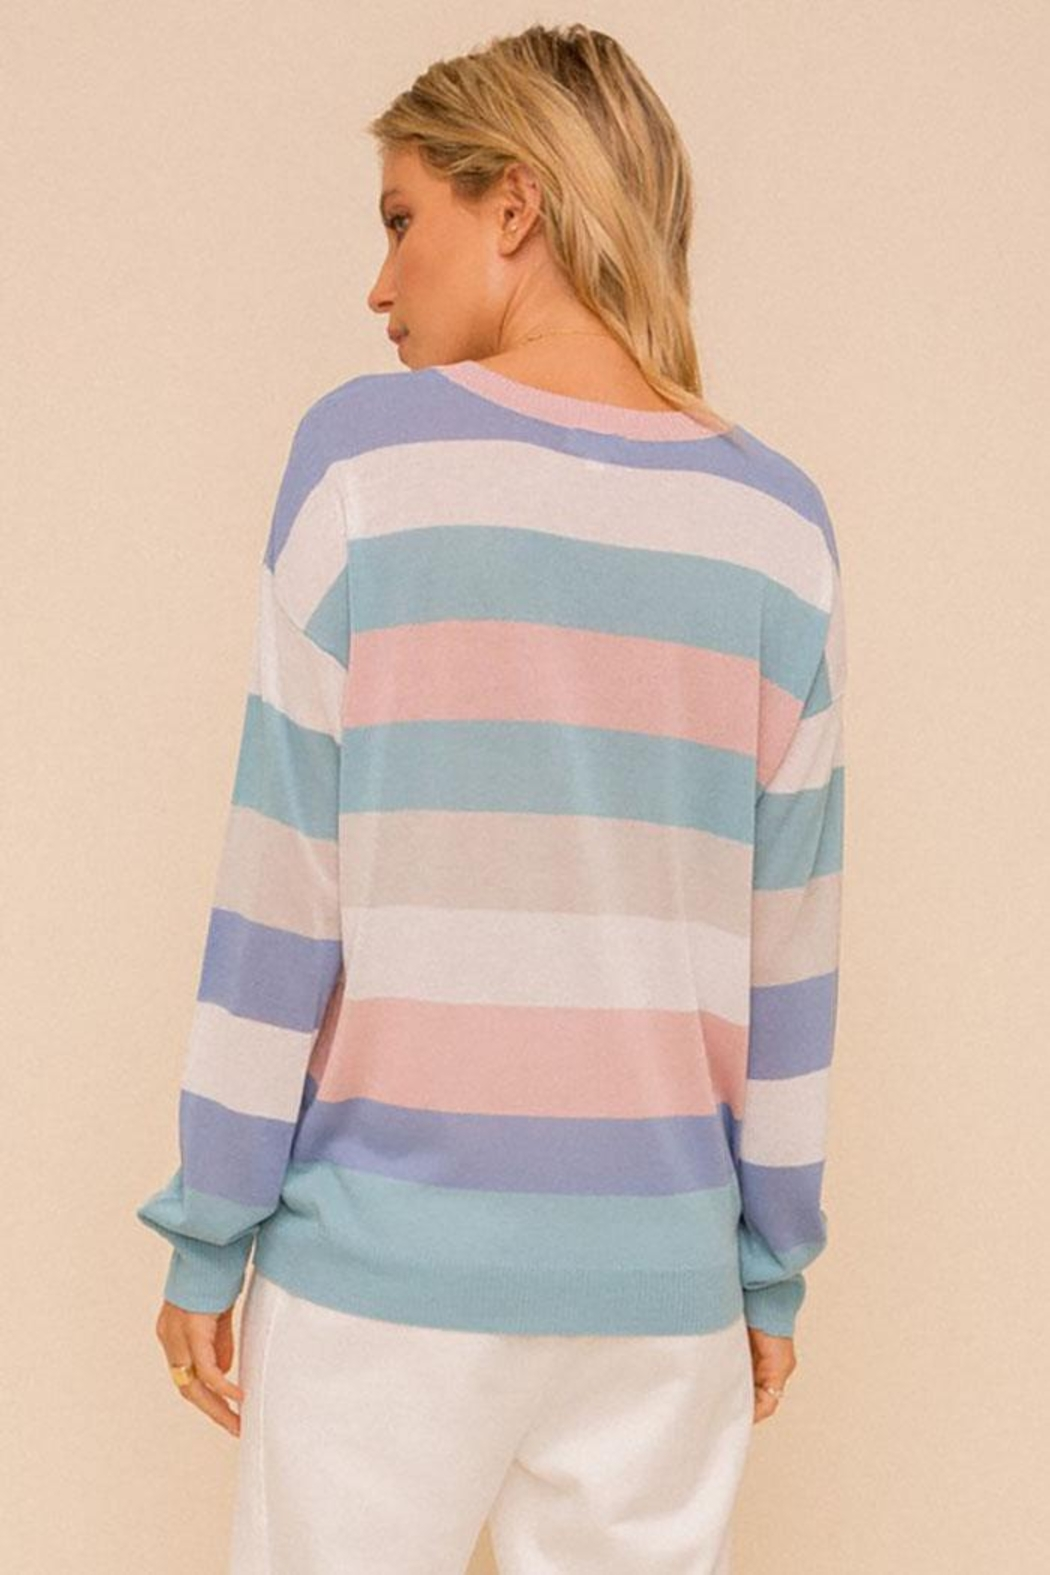 Hem & Thread Colorblock Pastel Lightweight Pullover Sweater Top - Back Cropped Image